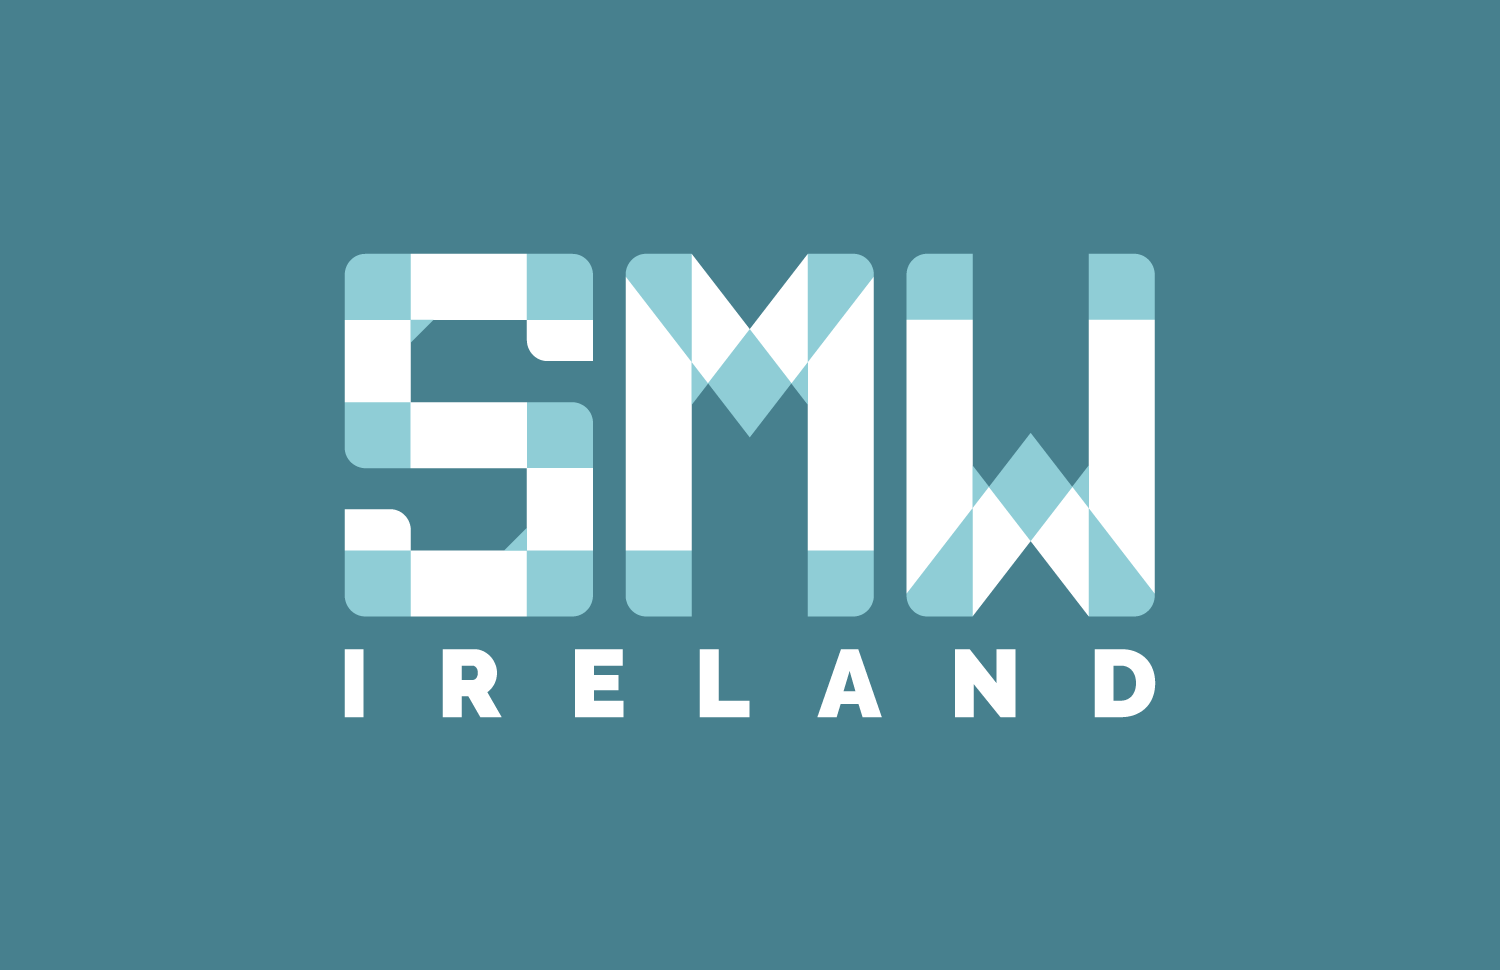 SMW Ireland logo design dark background